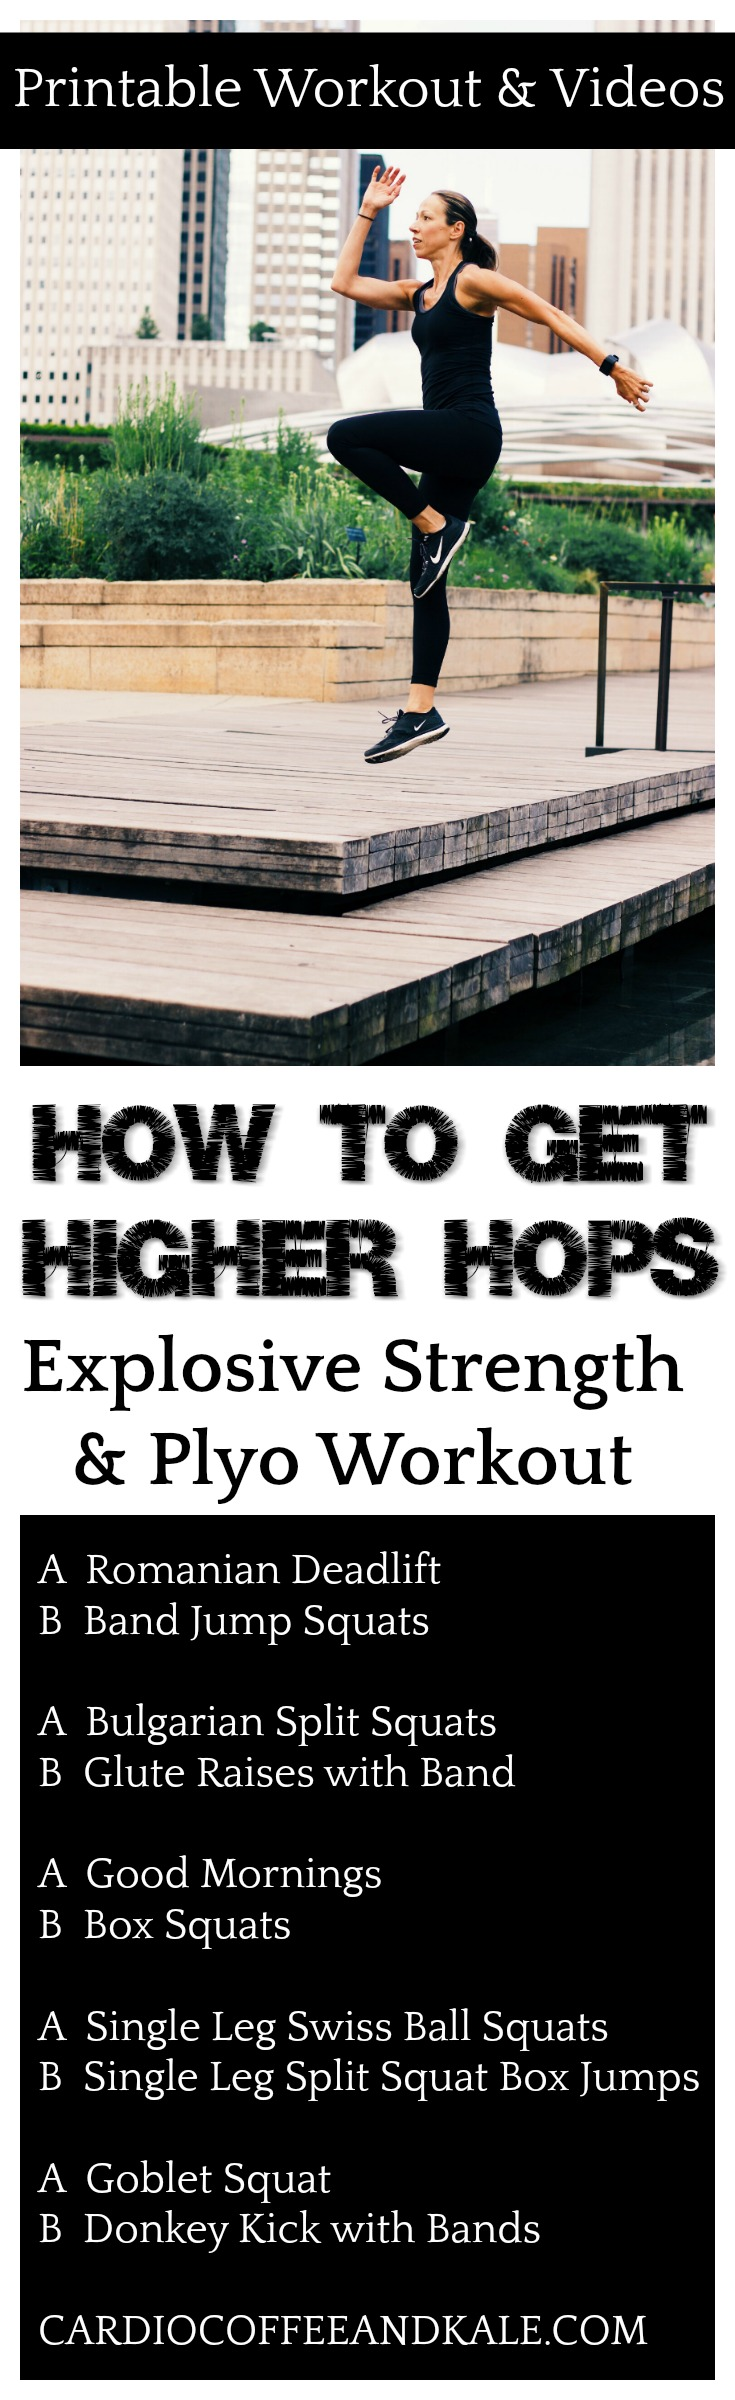 How to Get Higher Hops Explosive Strength and Plyo Workout.jpeg